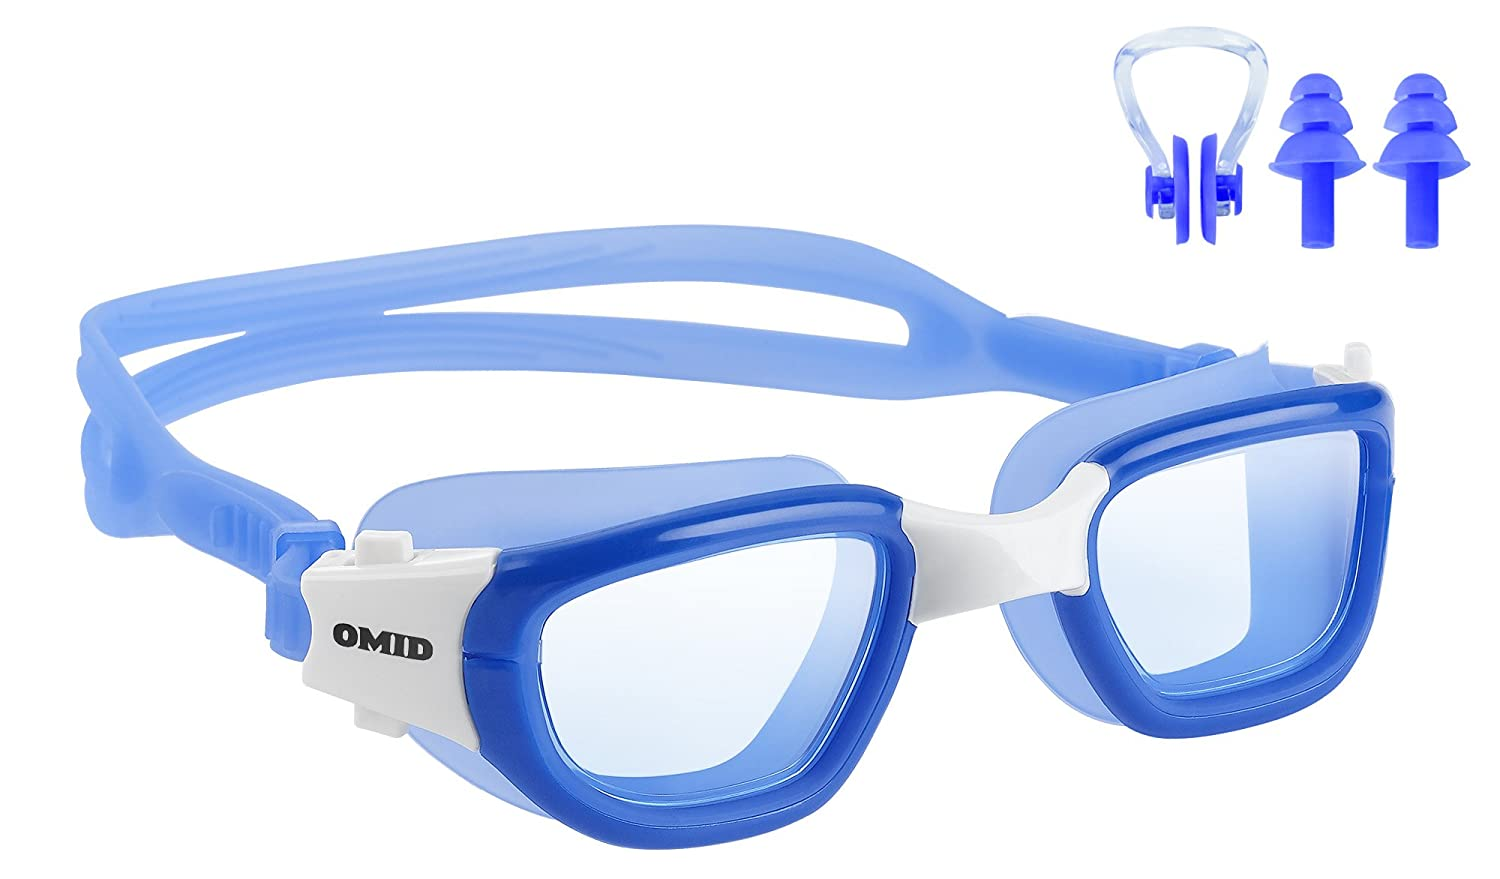 58b3ac1ccbc Amazon.com   OMID Swim Goggle - Anti-Fog Swimming Goggles with UV400  Protection Lens for Adults and Youth (Clear Mirrored Optional)   Sports    Outdoors